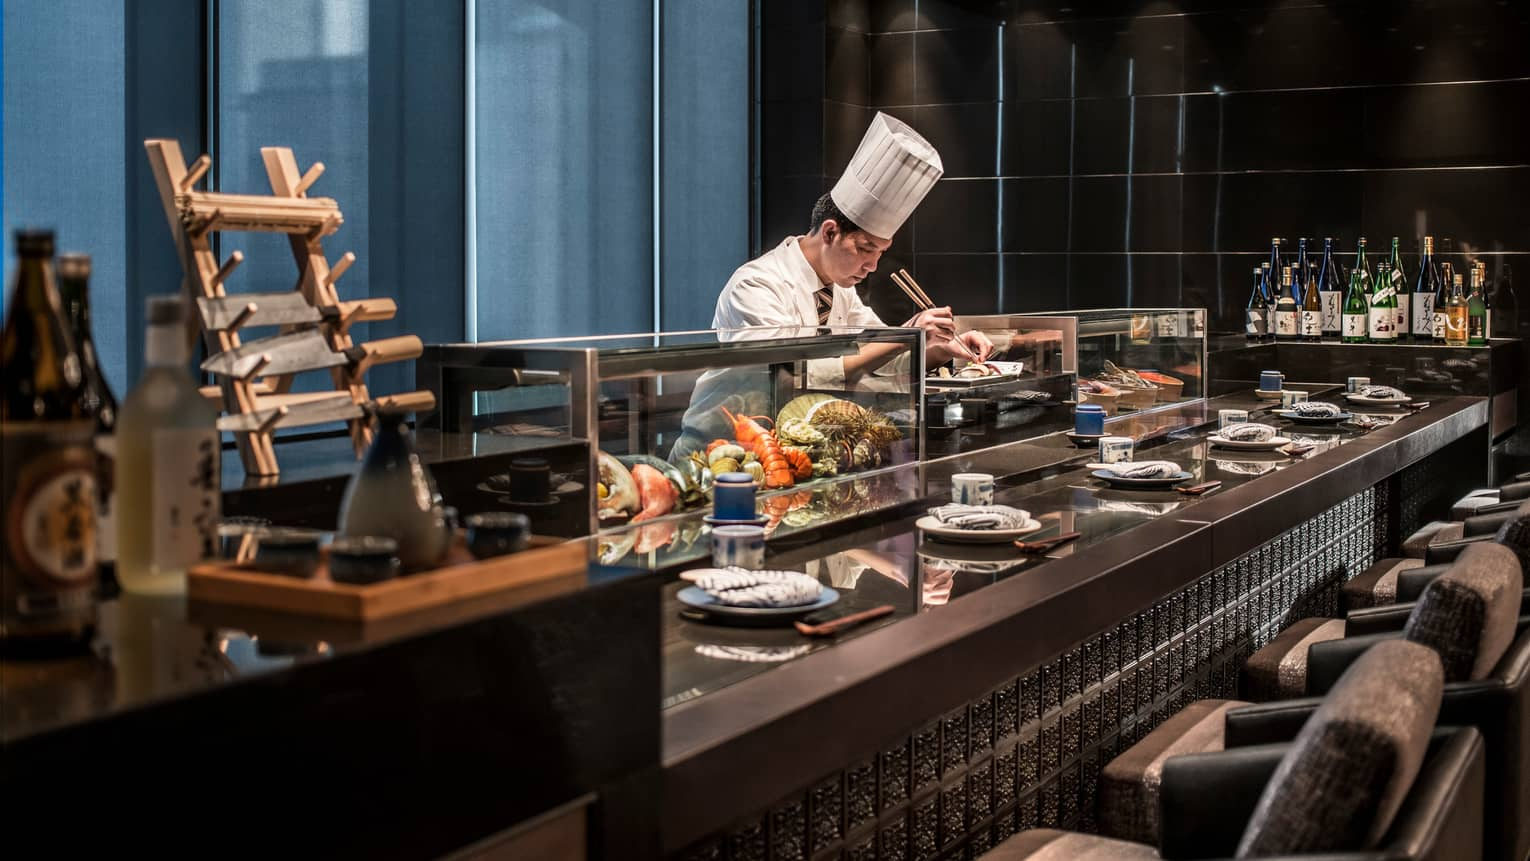 Kawa chef in tall white hat sets fresh sushi on plate by glass display with lobsters, fish